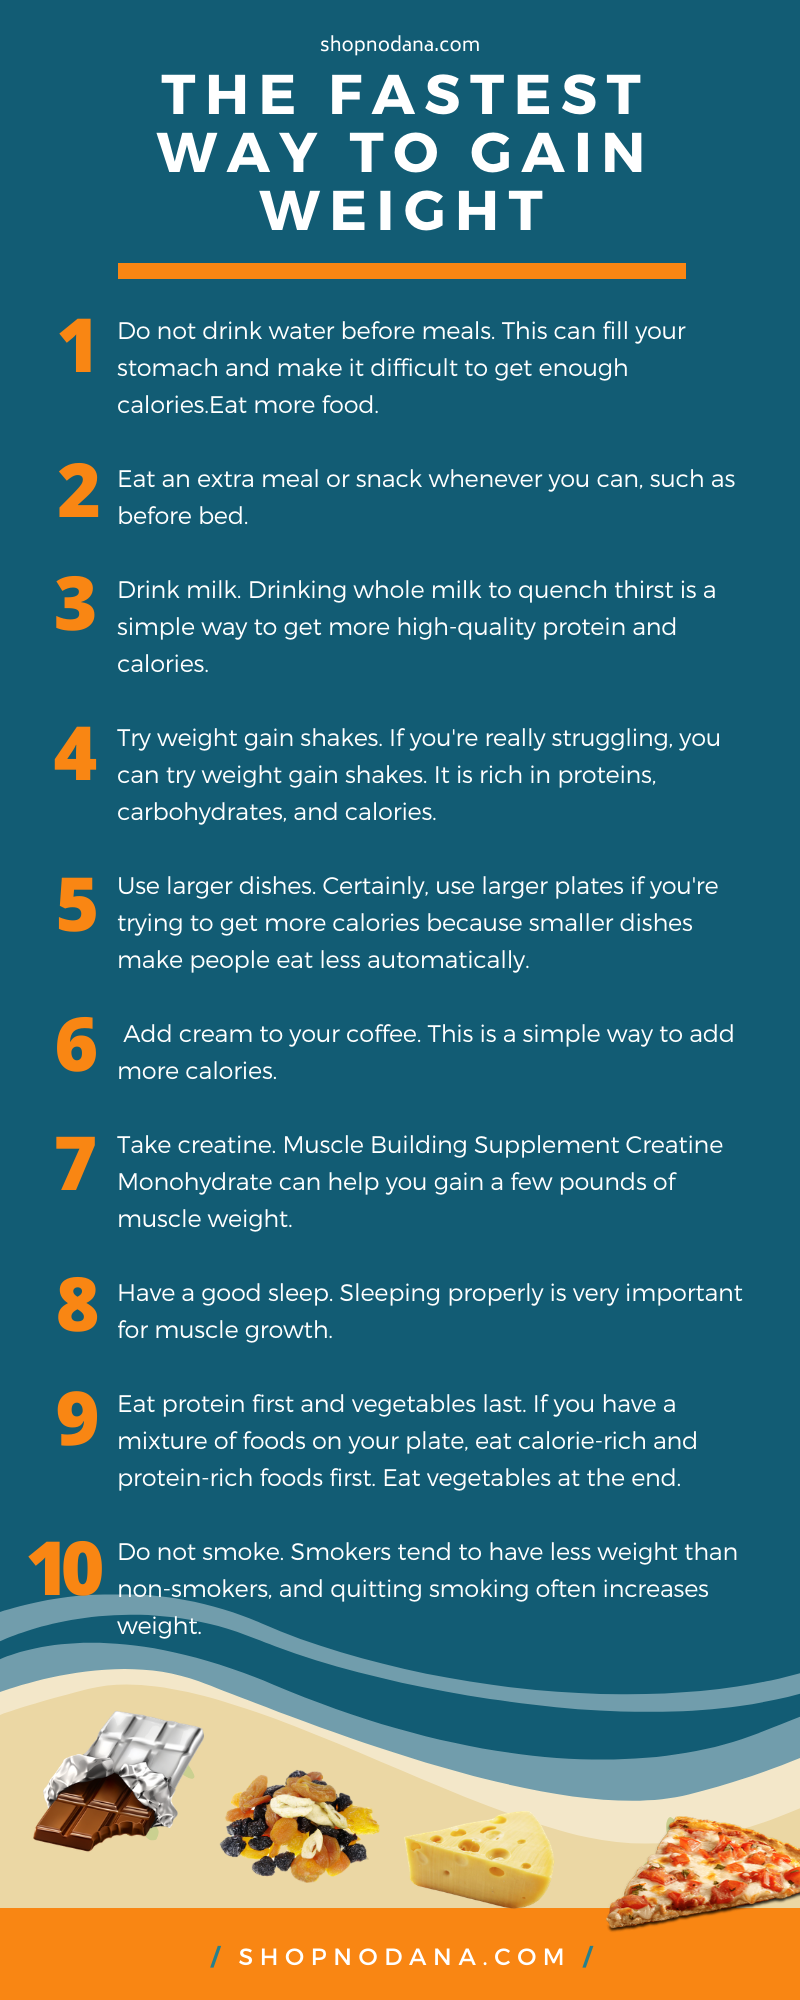 The fastest way to gain weight